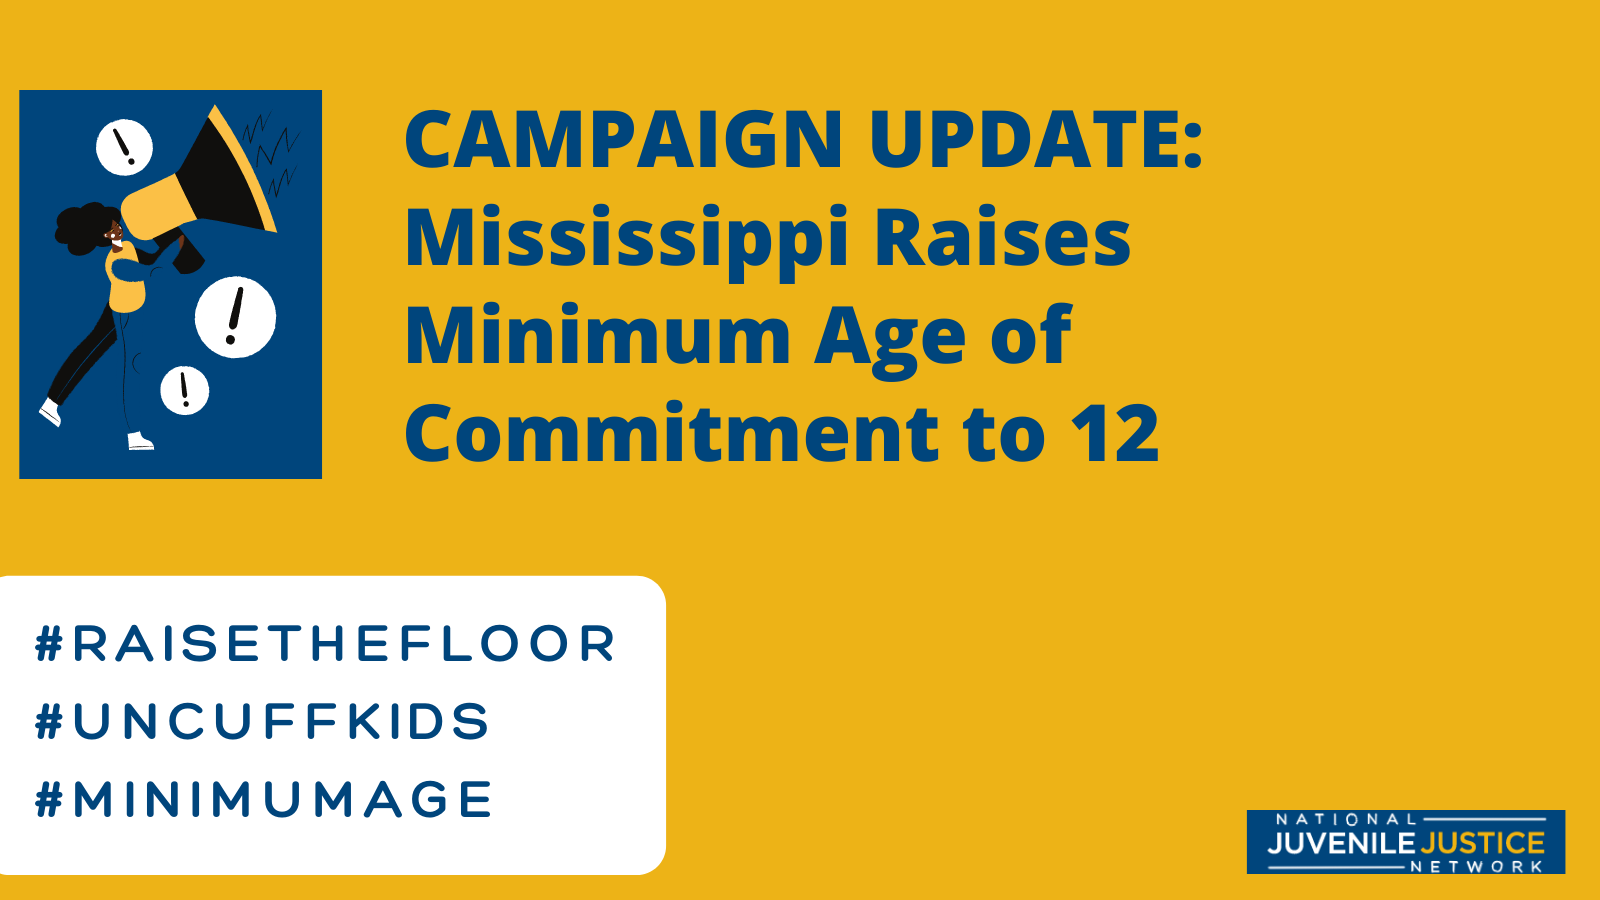 Campaign Update: Mississippi Raises the Minimum Age of Commitment to 12